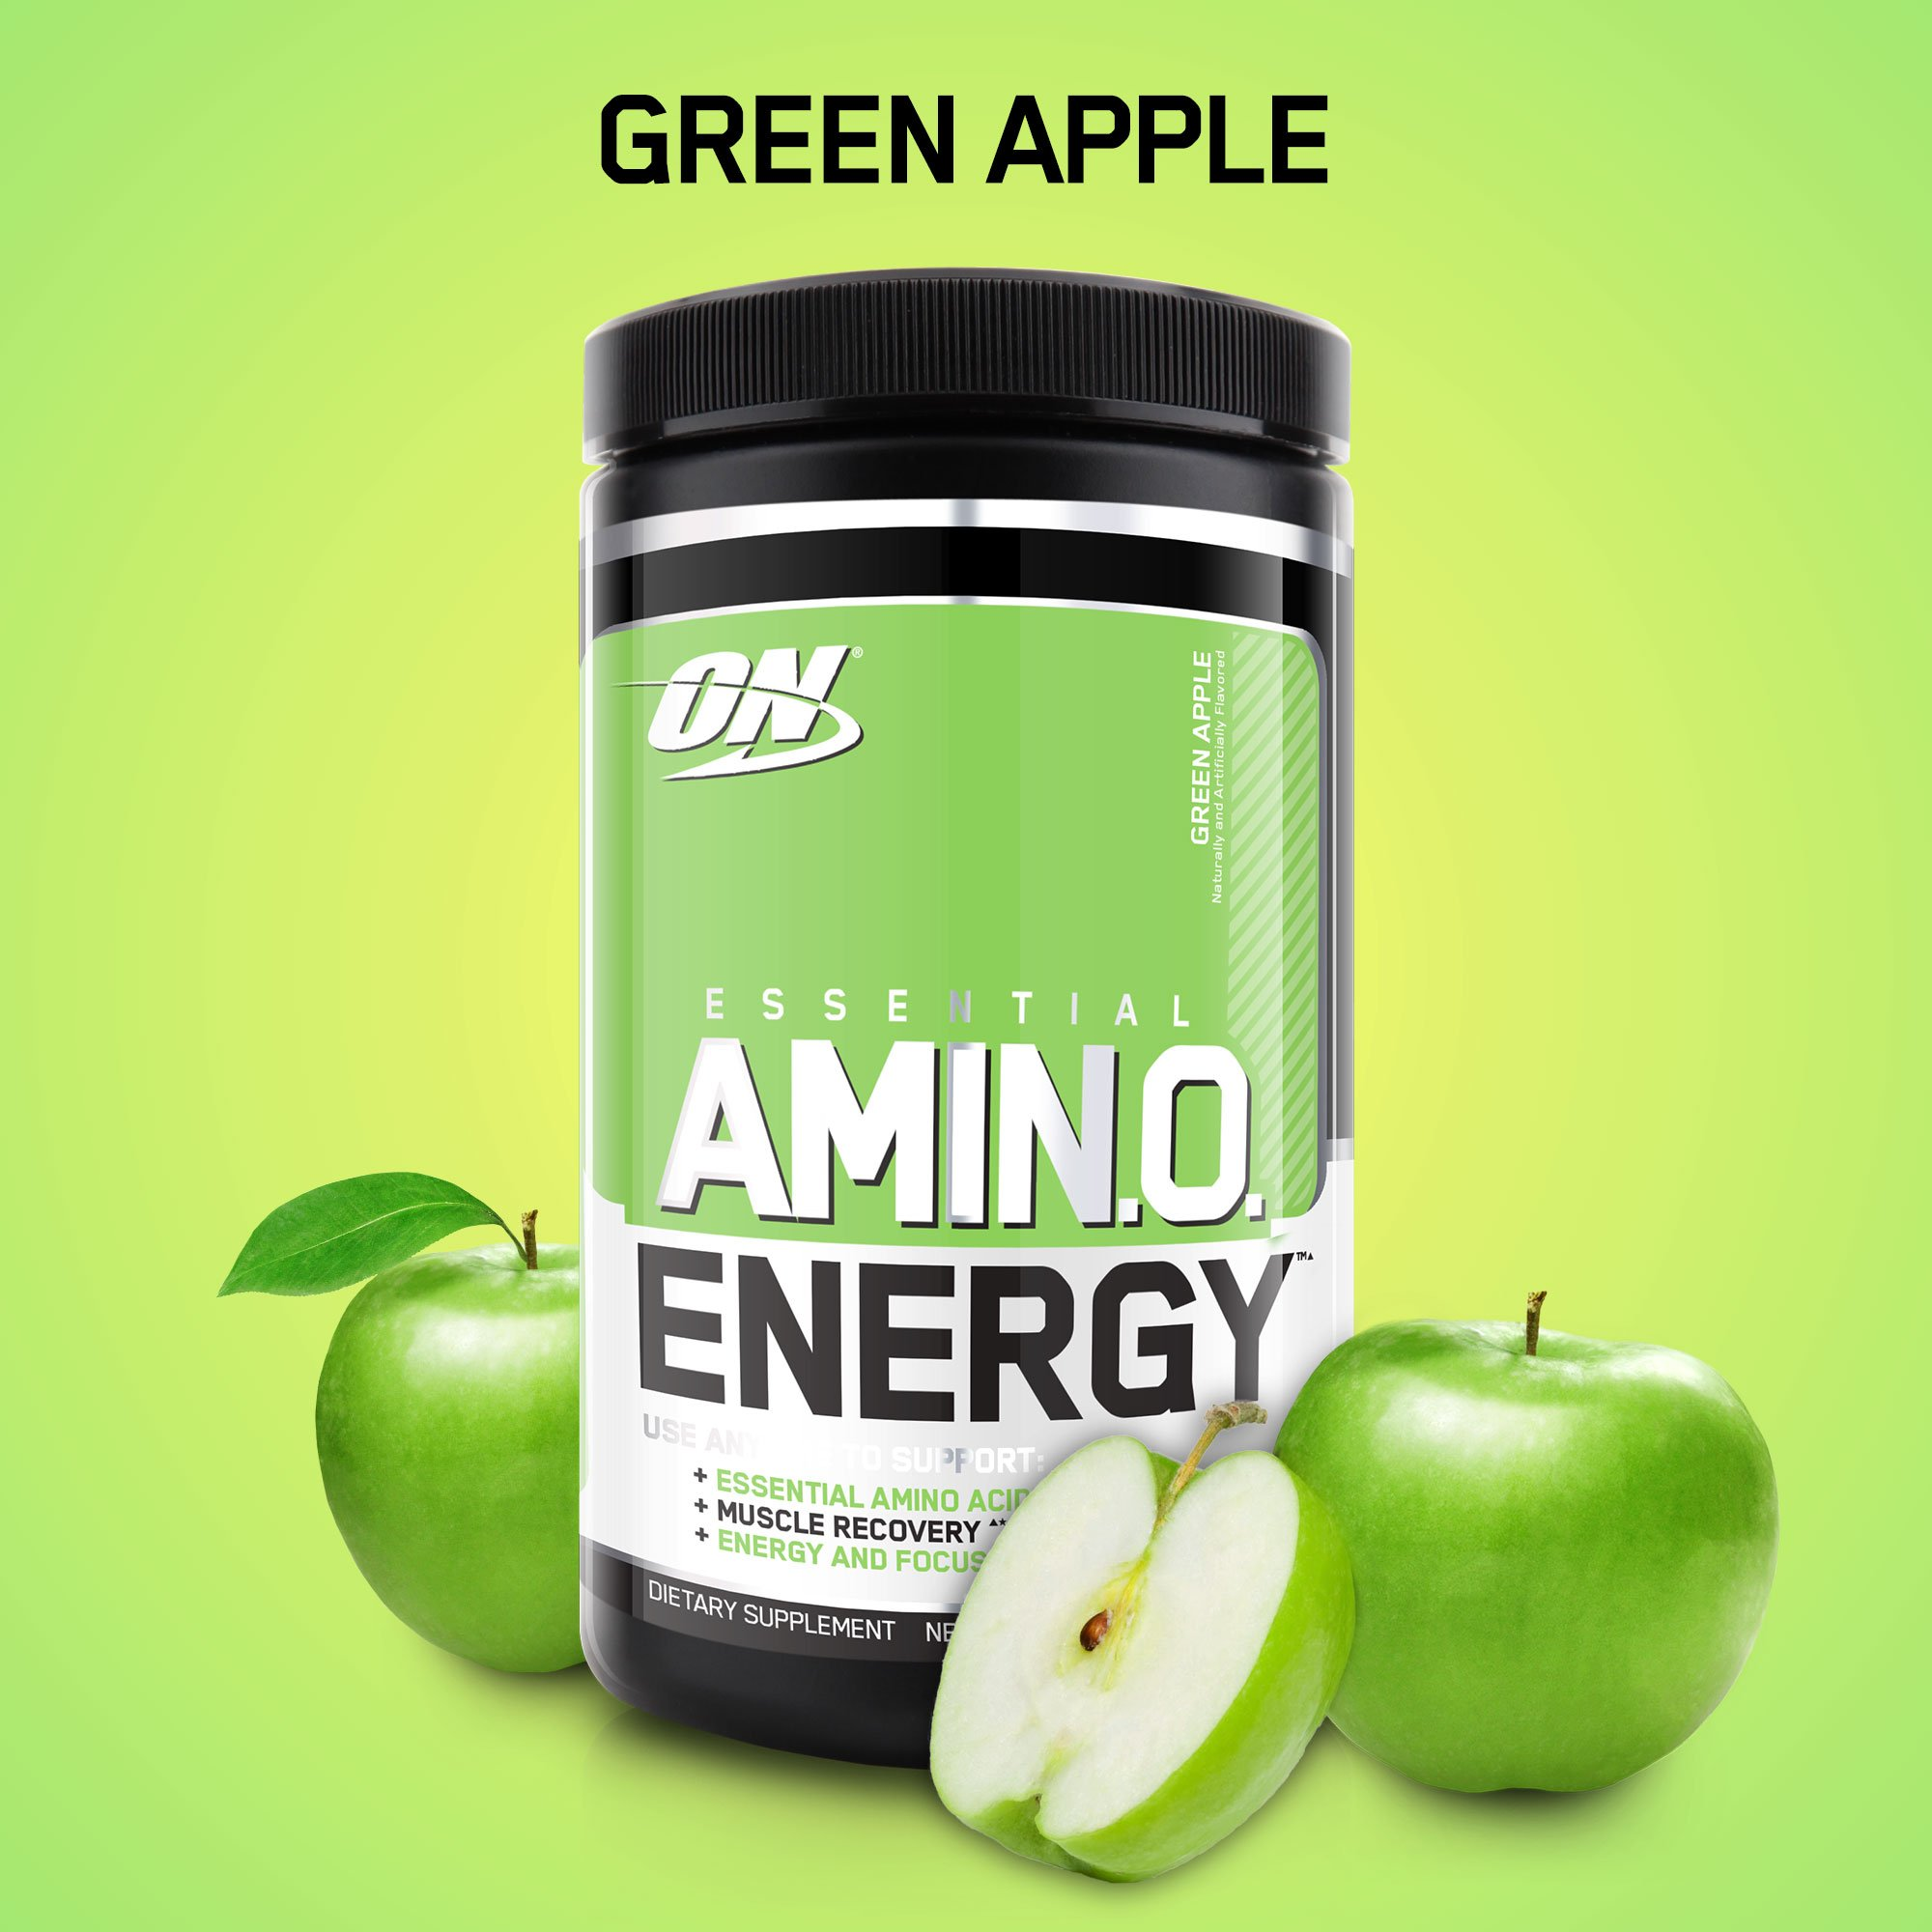 Optimum Nutrition Amino Energy, Green Apple, Preworkout and Essential Amino Acids with Green Tea and Green Coffee Extract, 30 Servings - 9.5 ounces